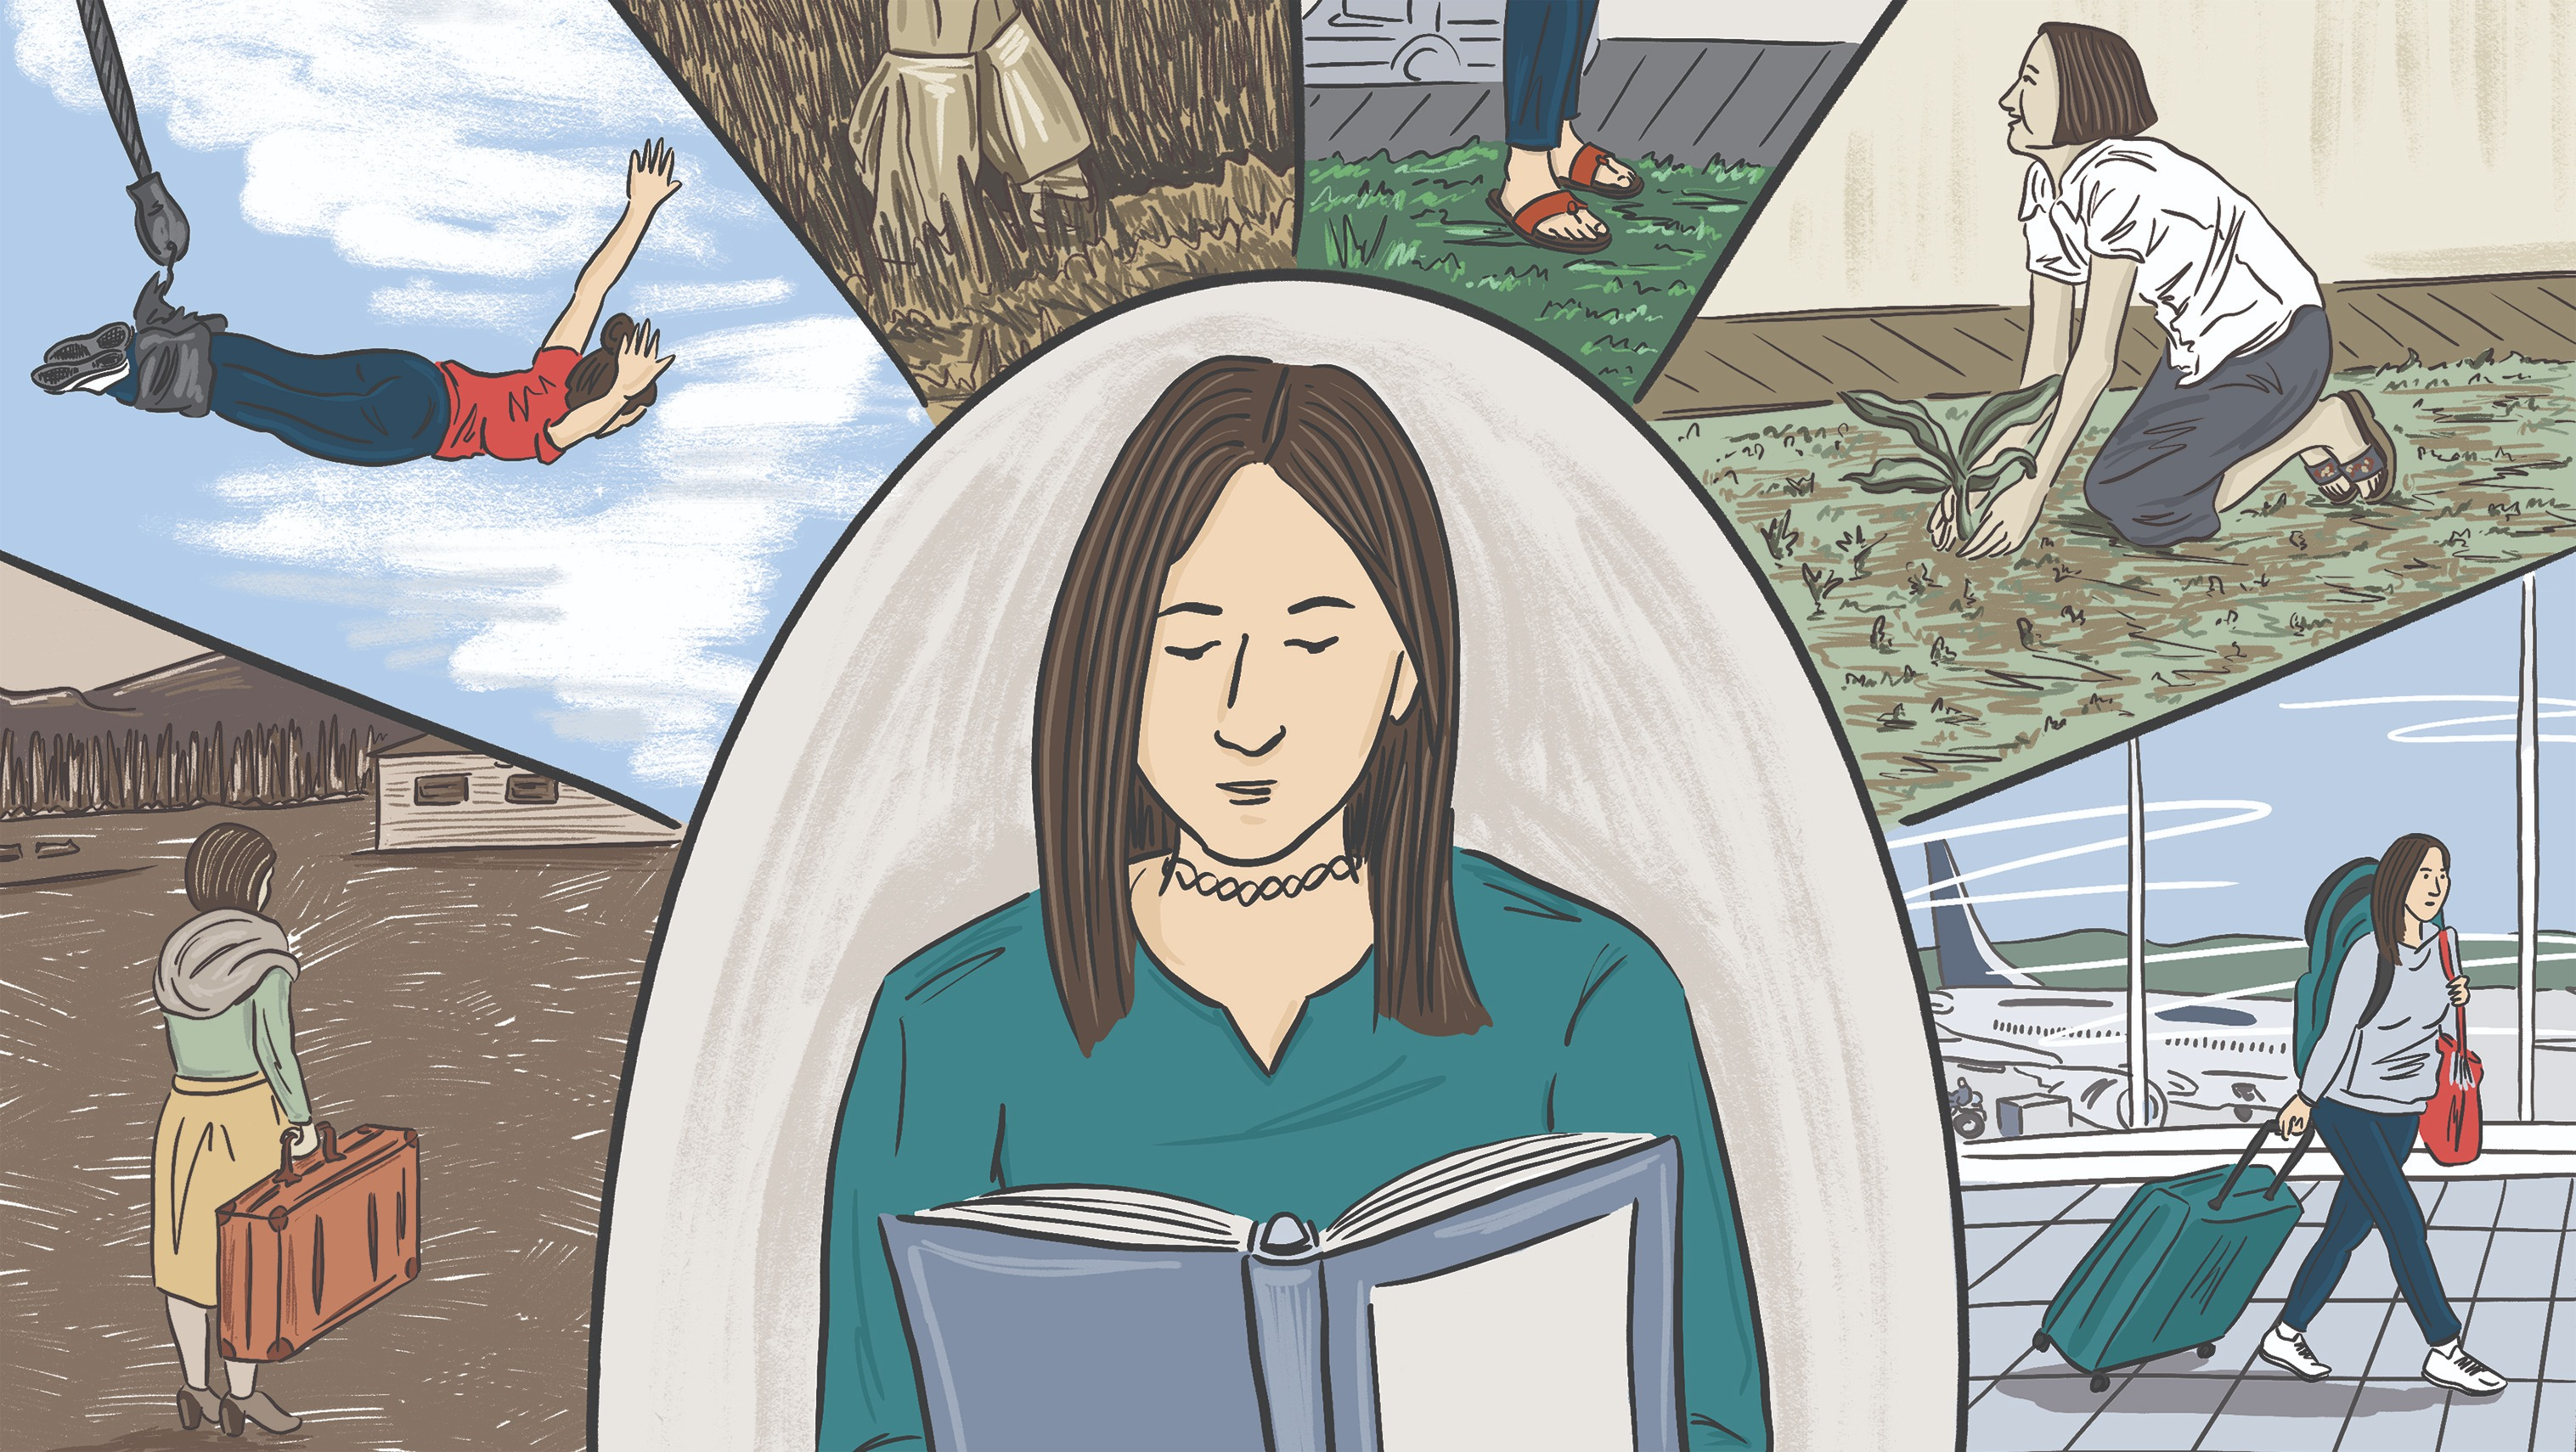 illustration of a person reading and book and various small frames in an arch with an illustration of that person engaged in various activities